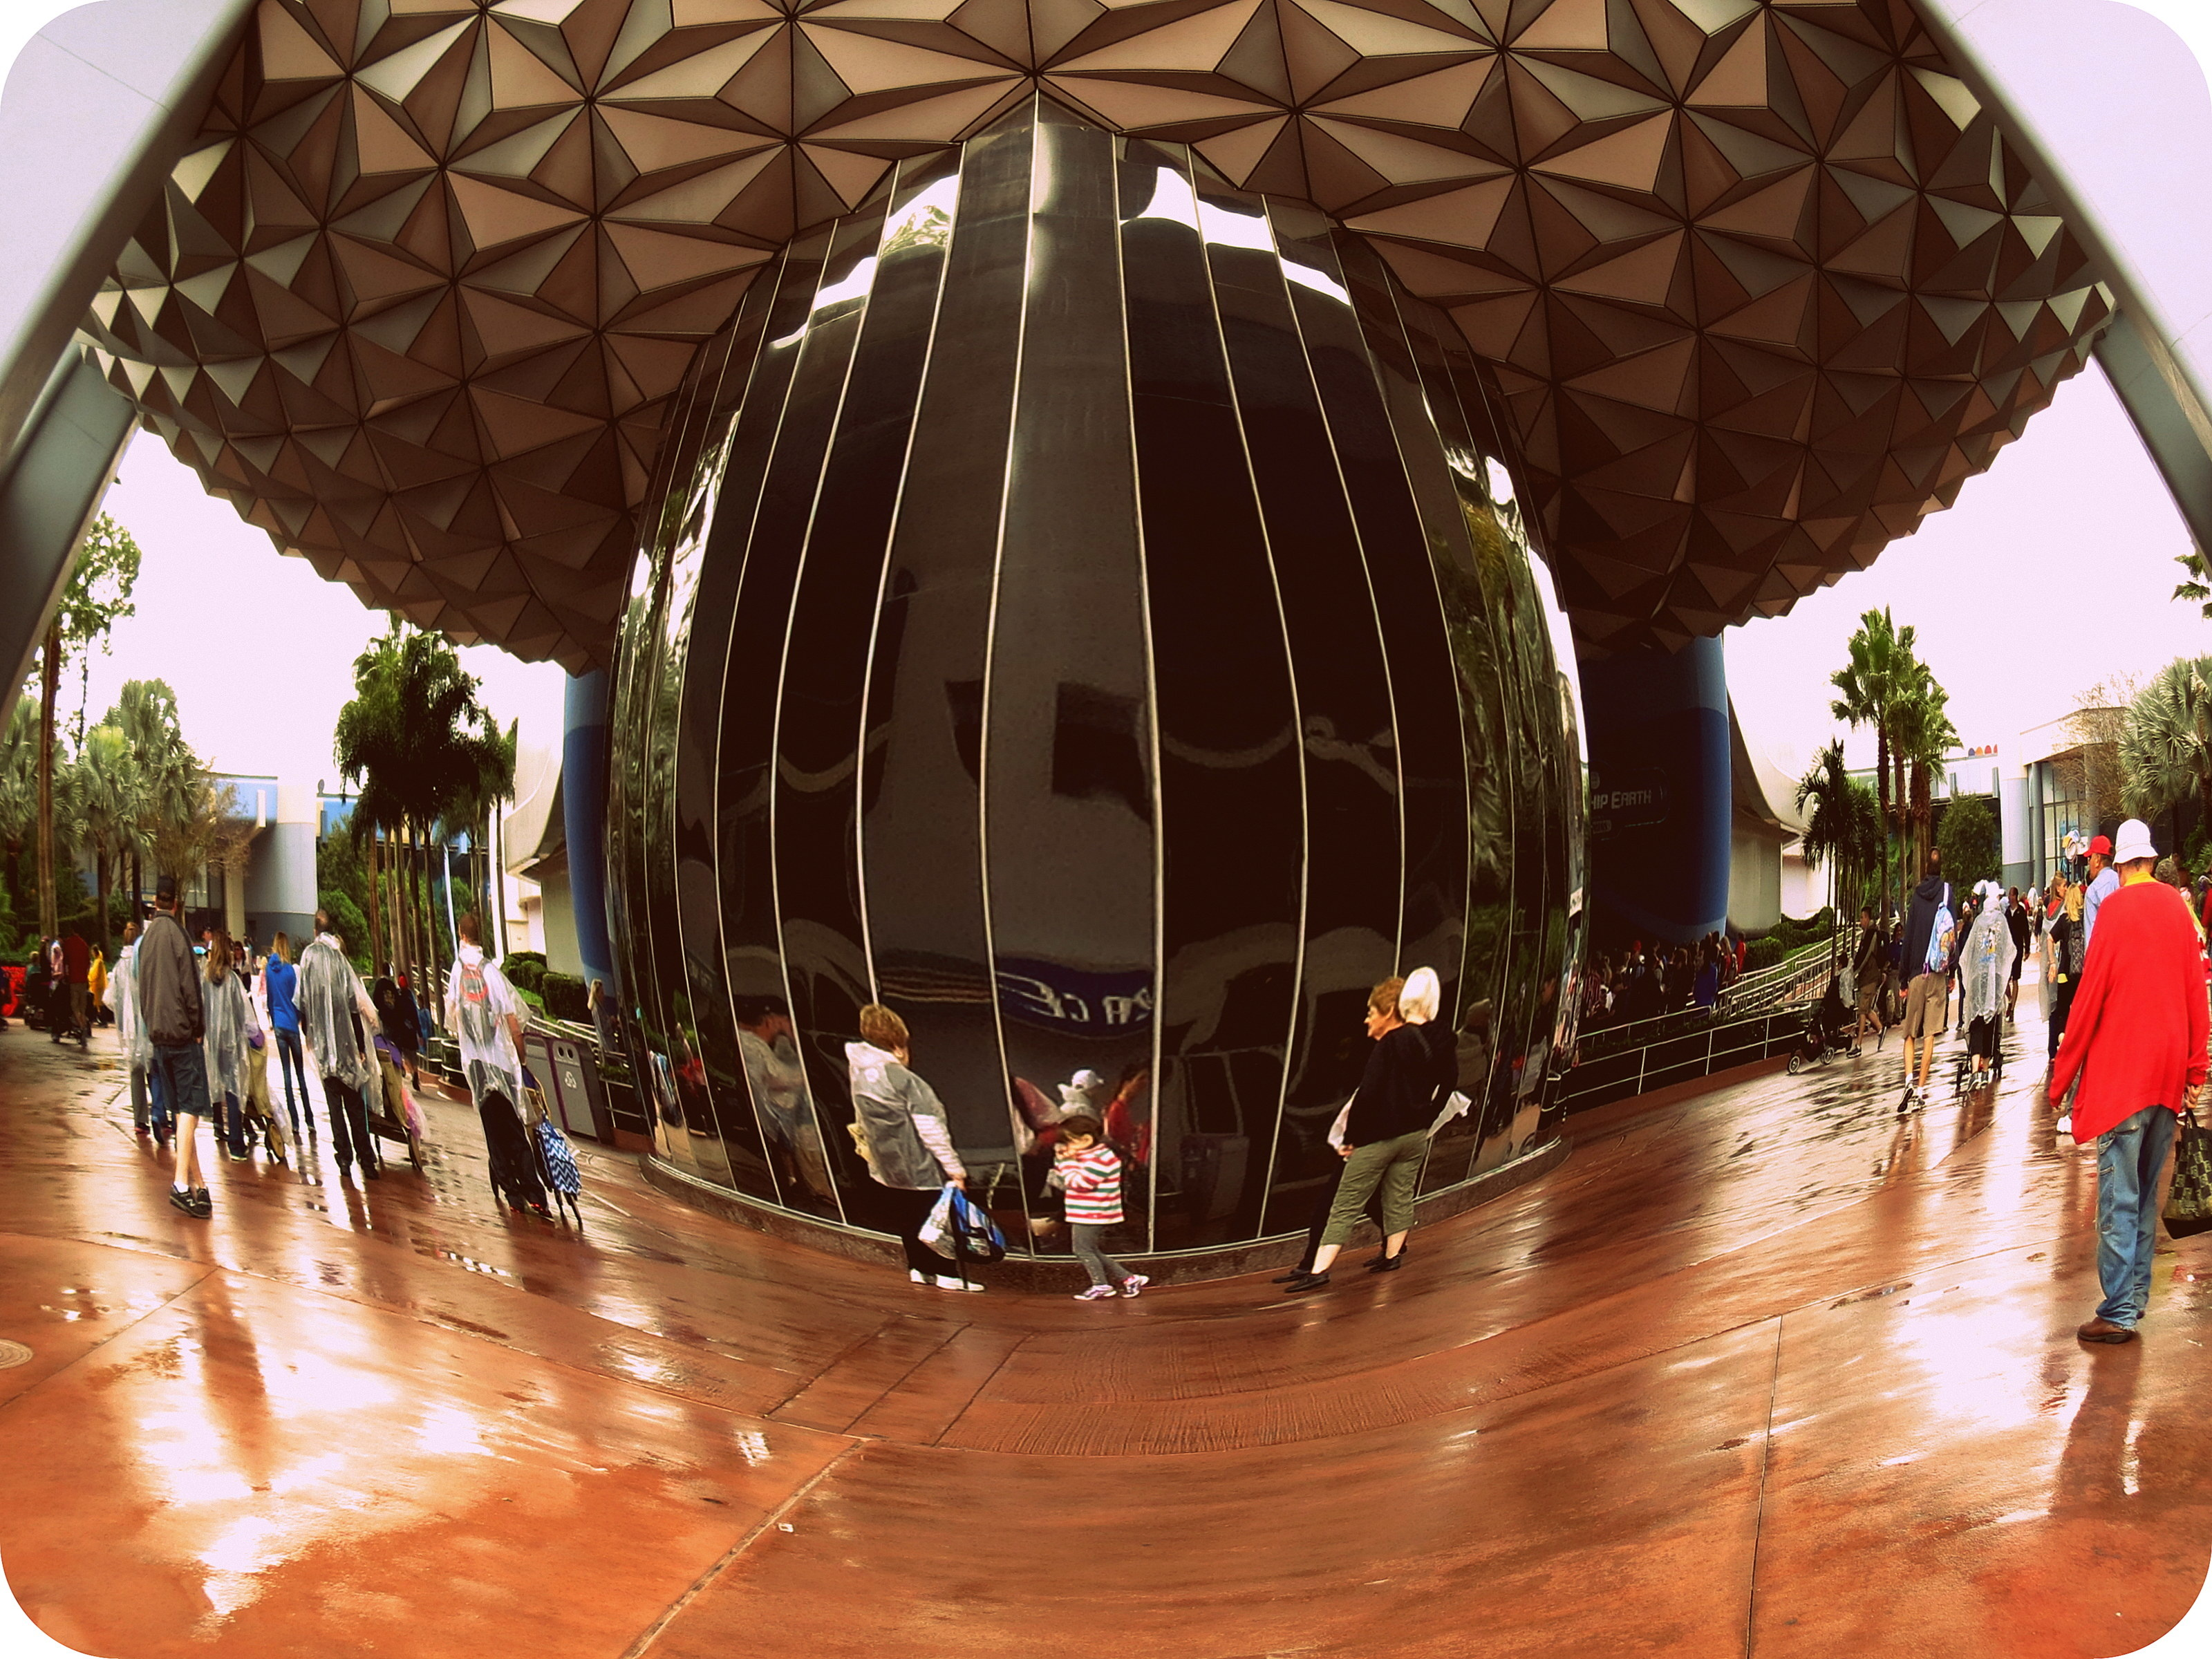 Spaceship Earth for MM